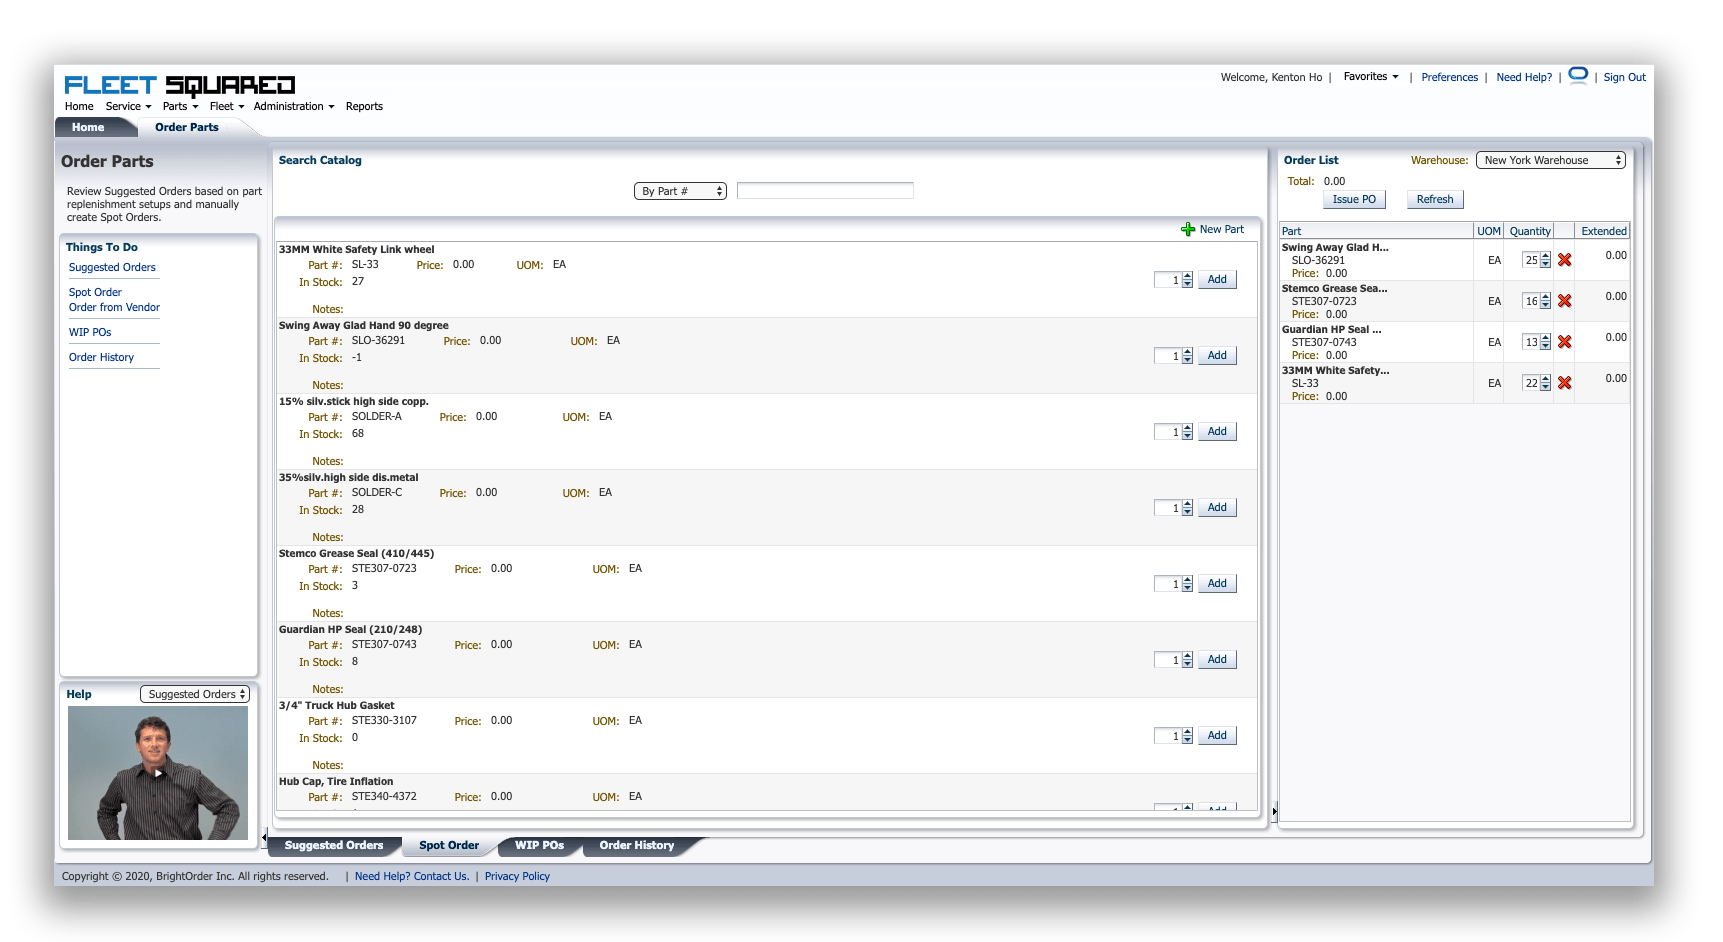 Parts Ordering Screen